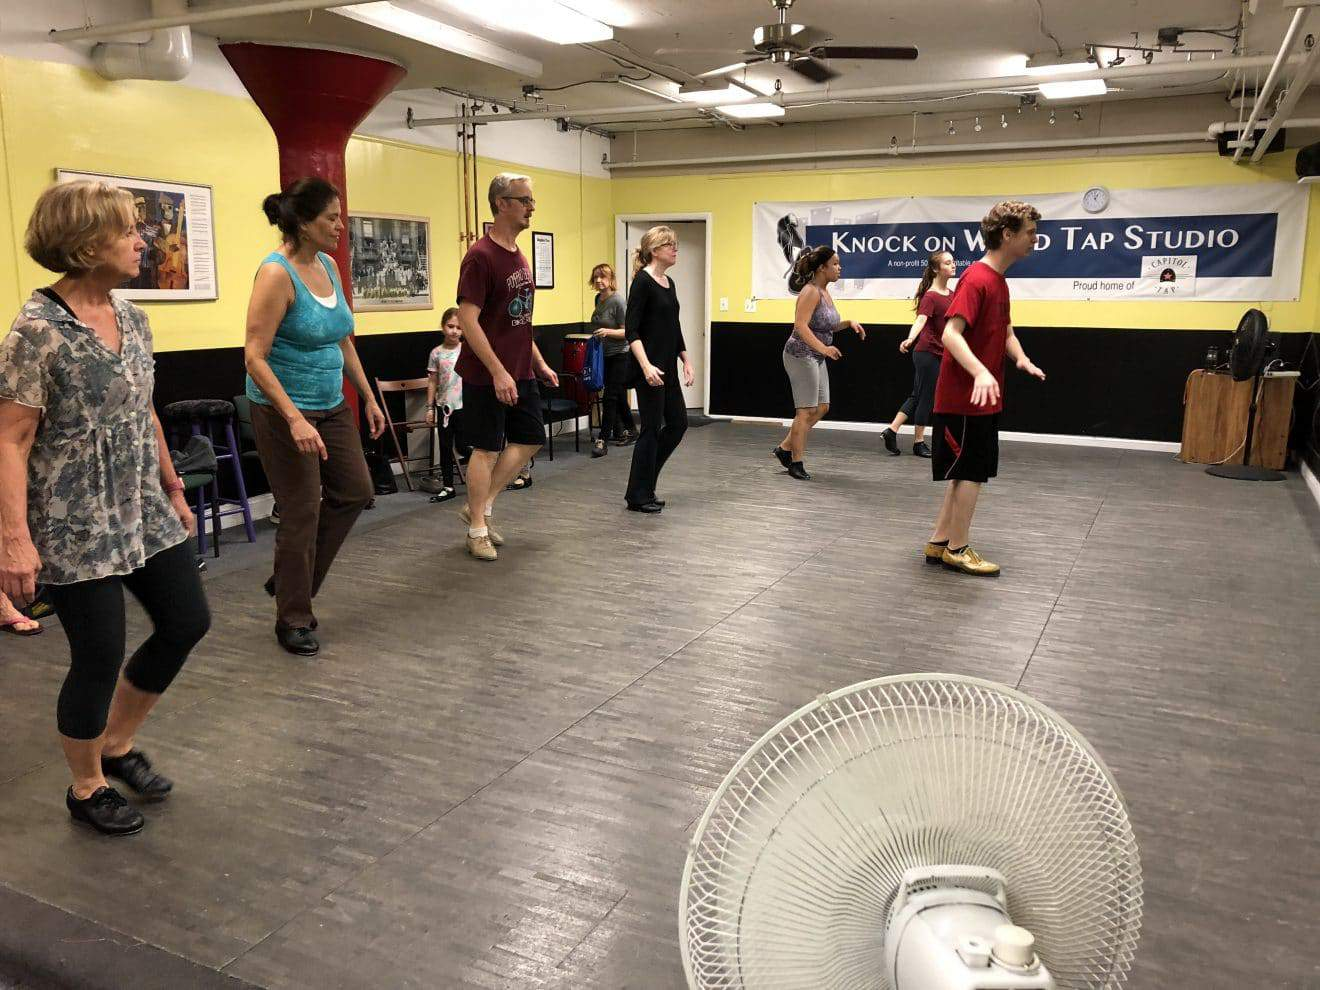 Intro to Tap 6 and 7 week sessions at Knock On Wood Tap Studio